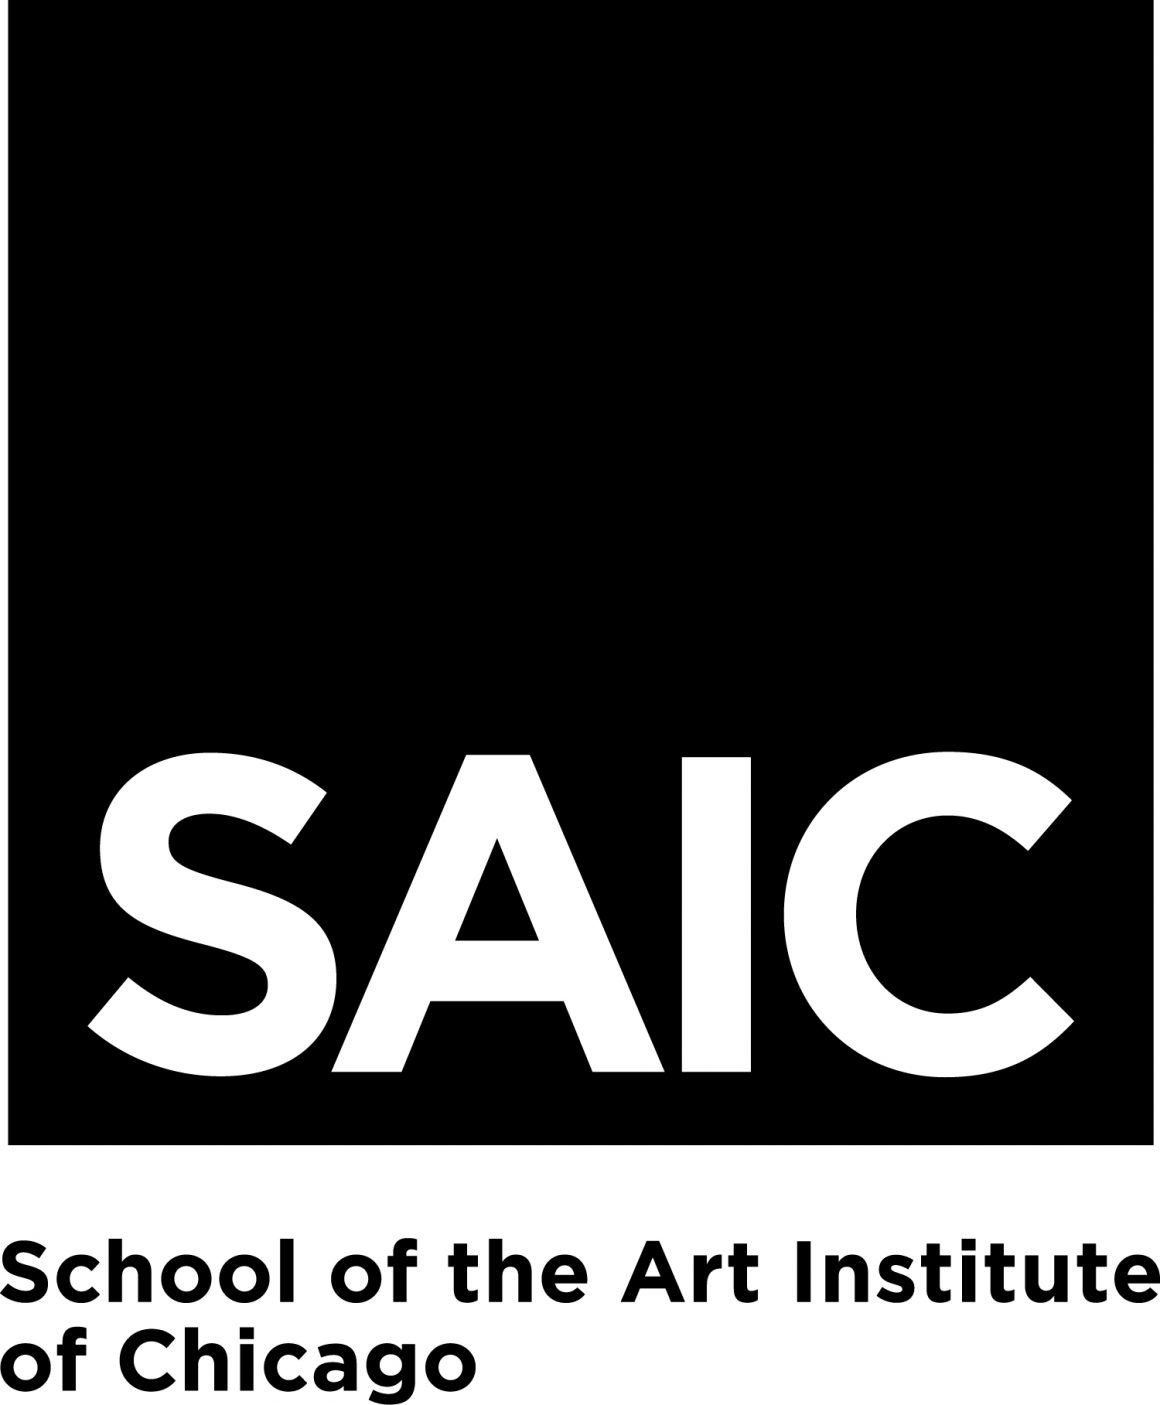 FULL-TIME VISITING FACULTY POSITION IN THE DEPARTMENT OF ARTS ADMINISTRATION & POLICY